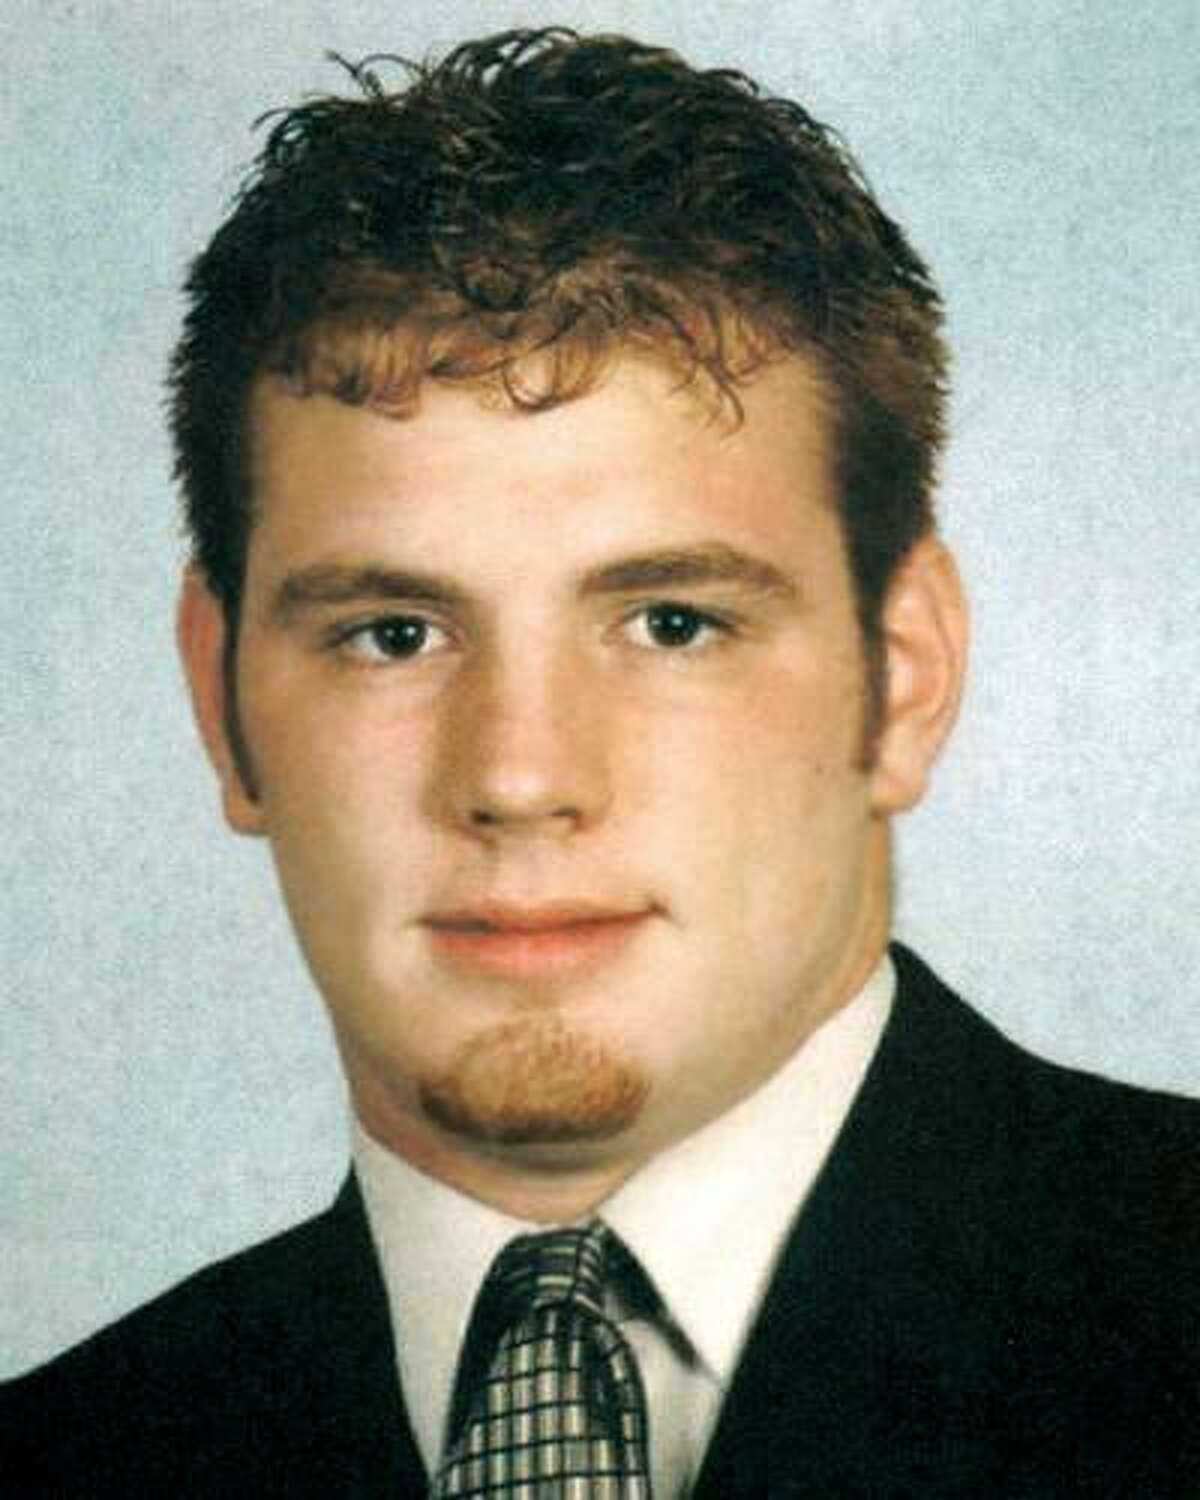 Craig Frear, a 17-year-old high schooler from Scotia-Glenville, disappeared June 27, 2004.